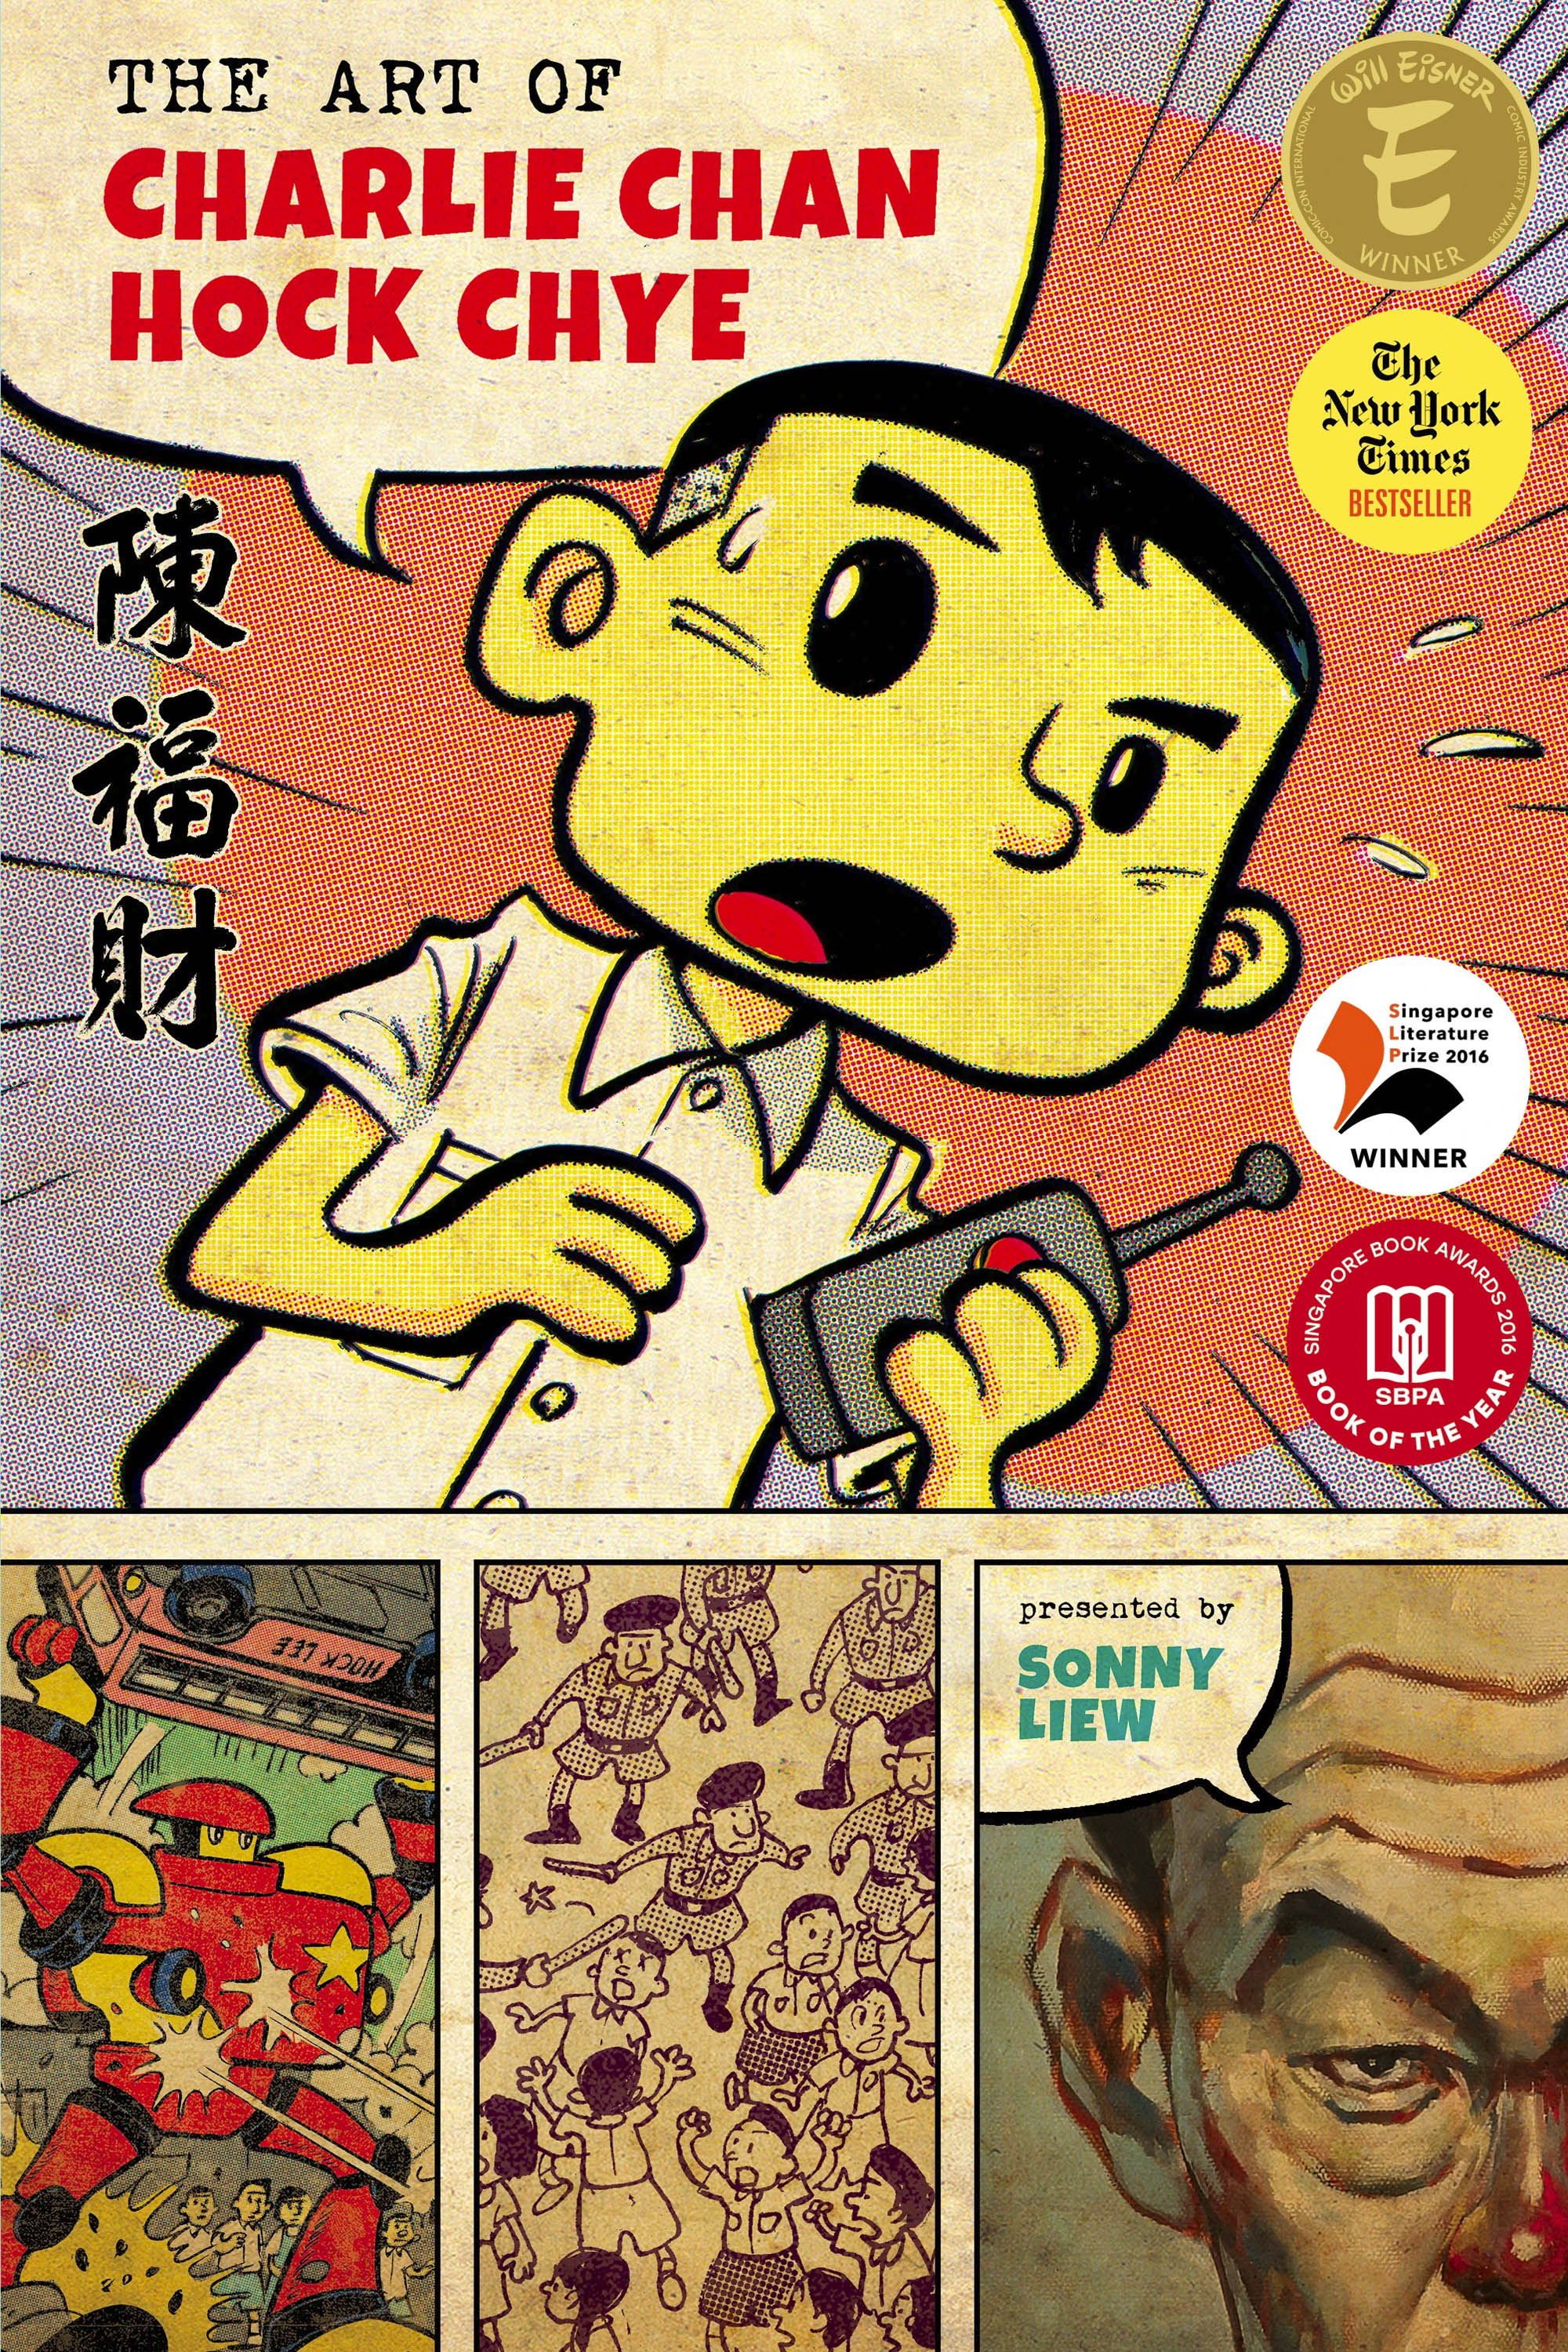 Art of Charlie Chan Hock Chye to get animated adaptation Sonny Liew